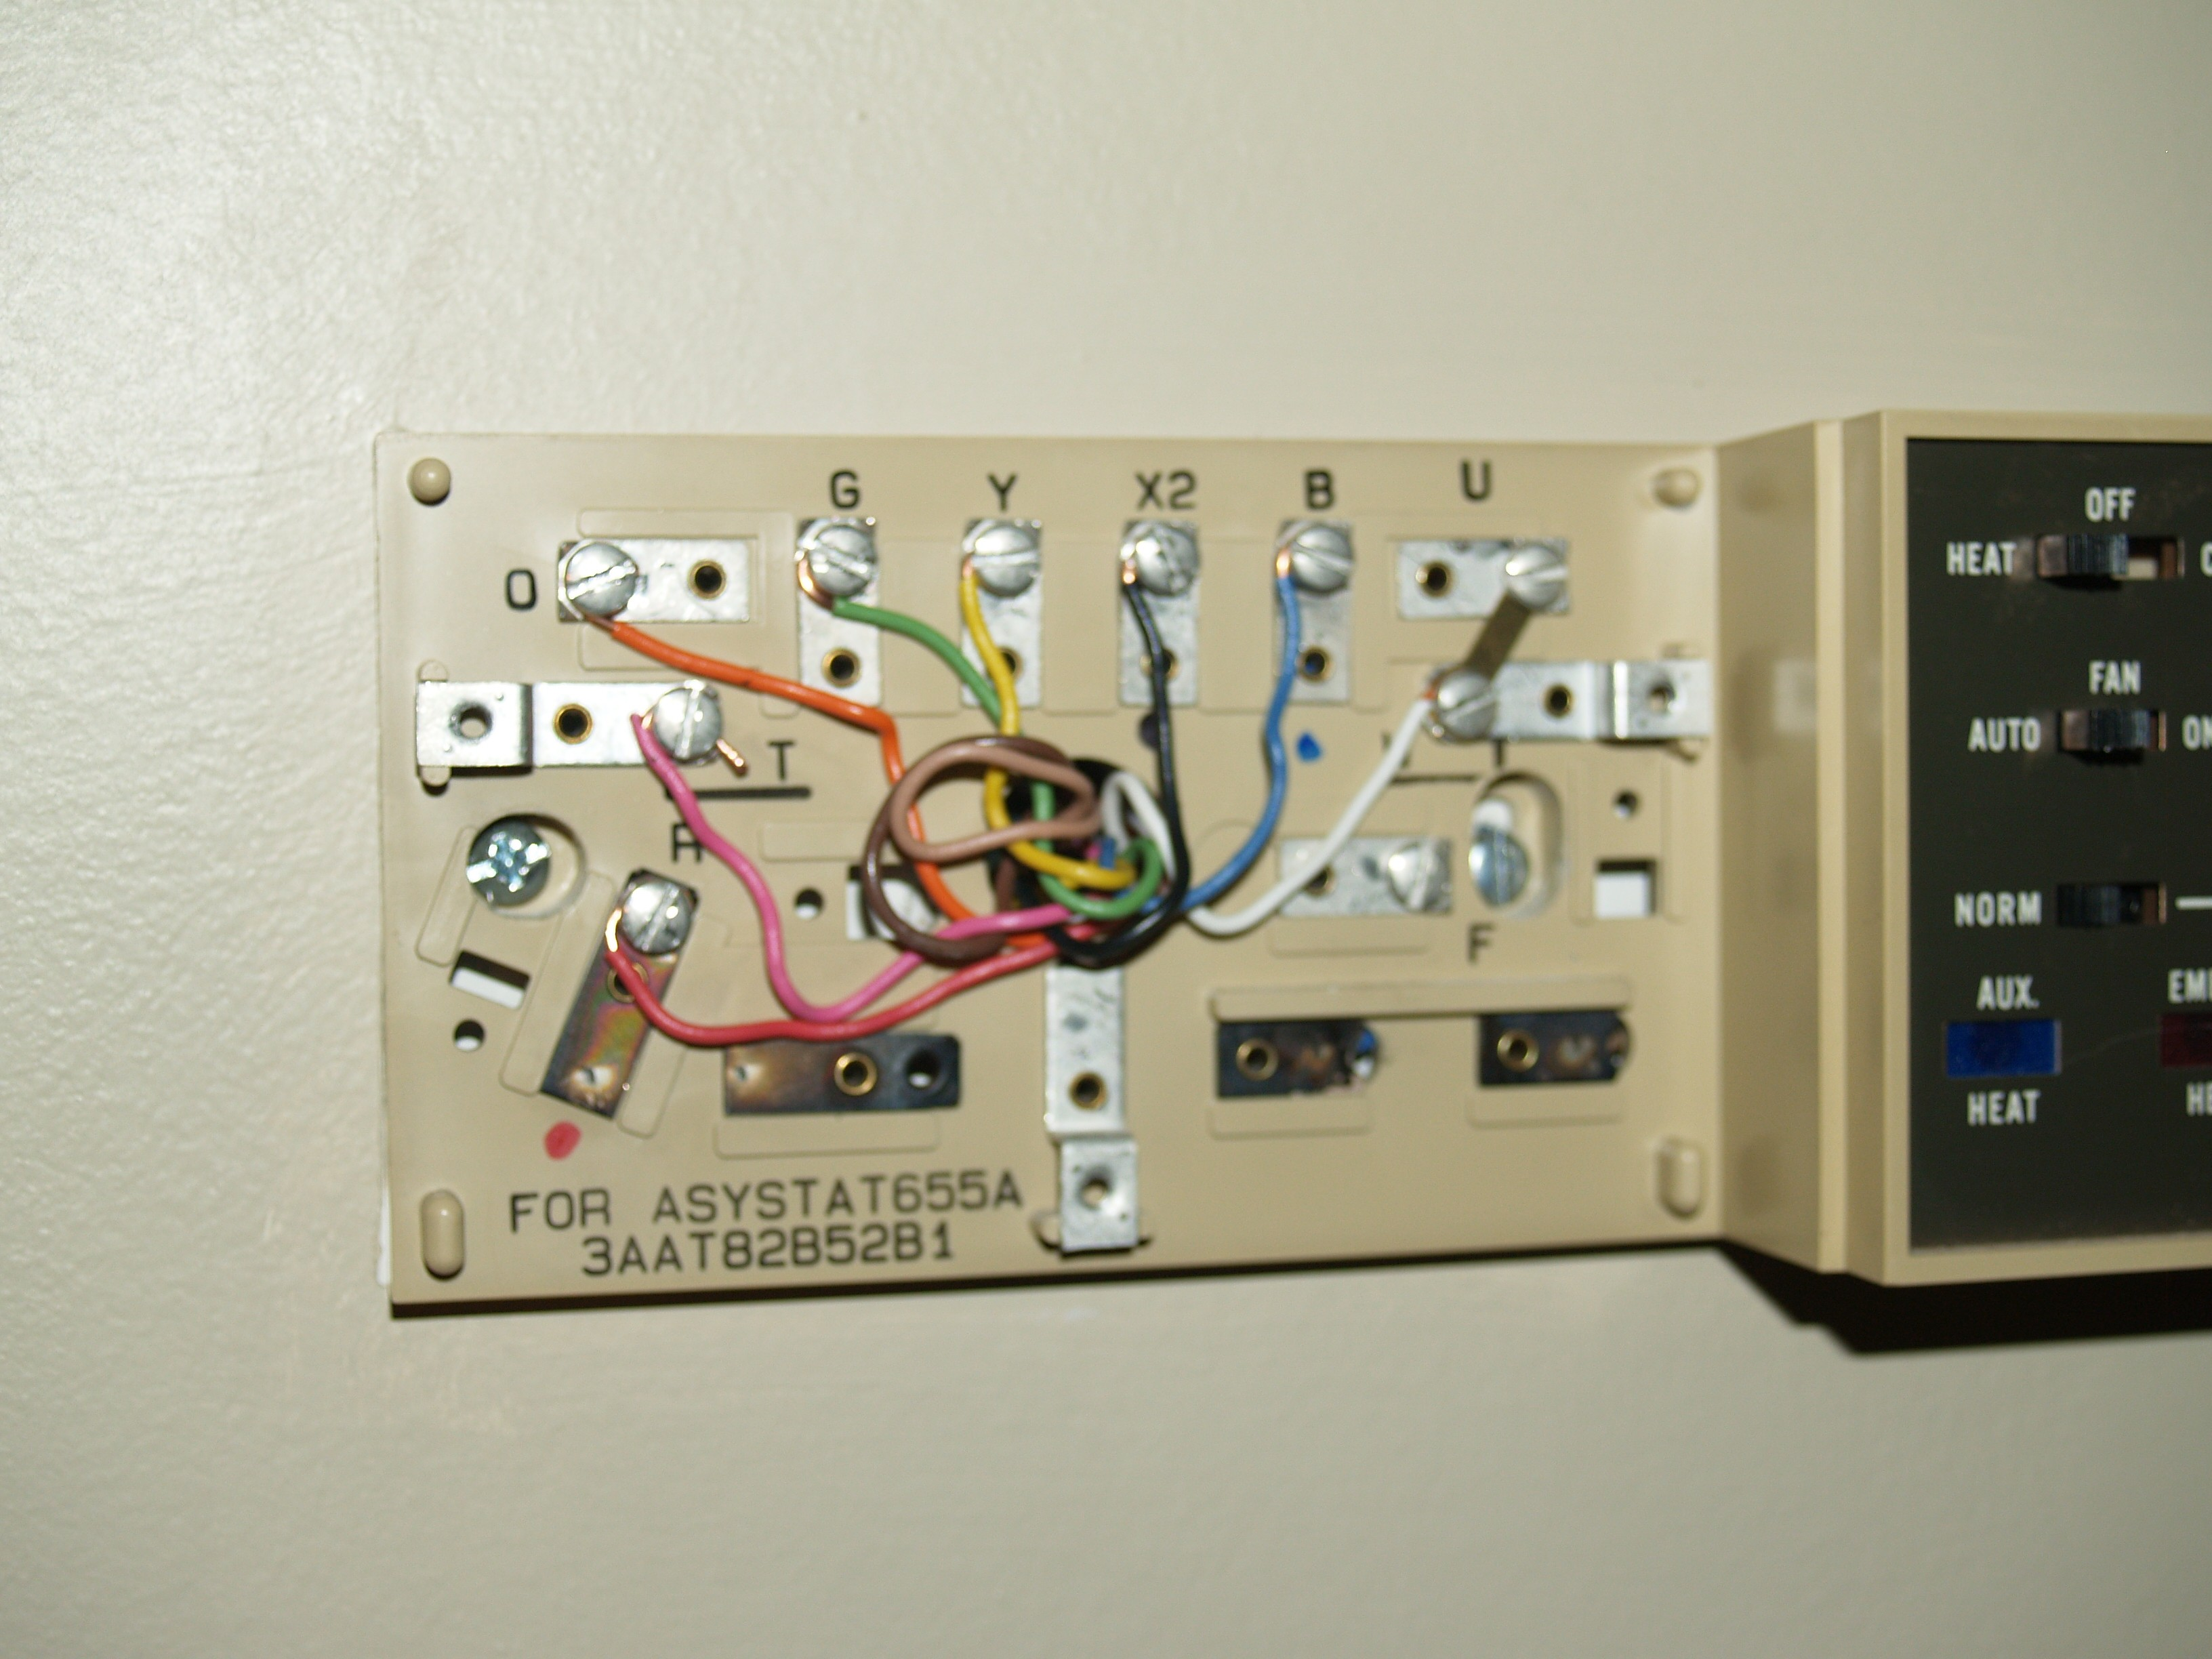 I Have A Honeywell Thermostat Asystat655a And I Want To Replace It With A New Honeywell Vision